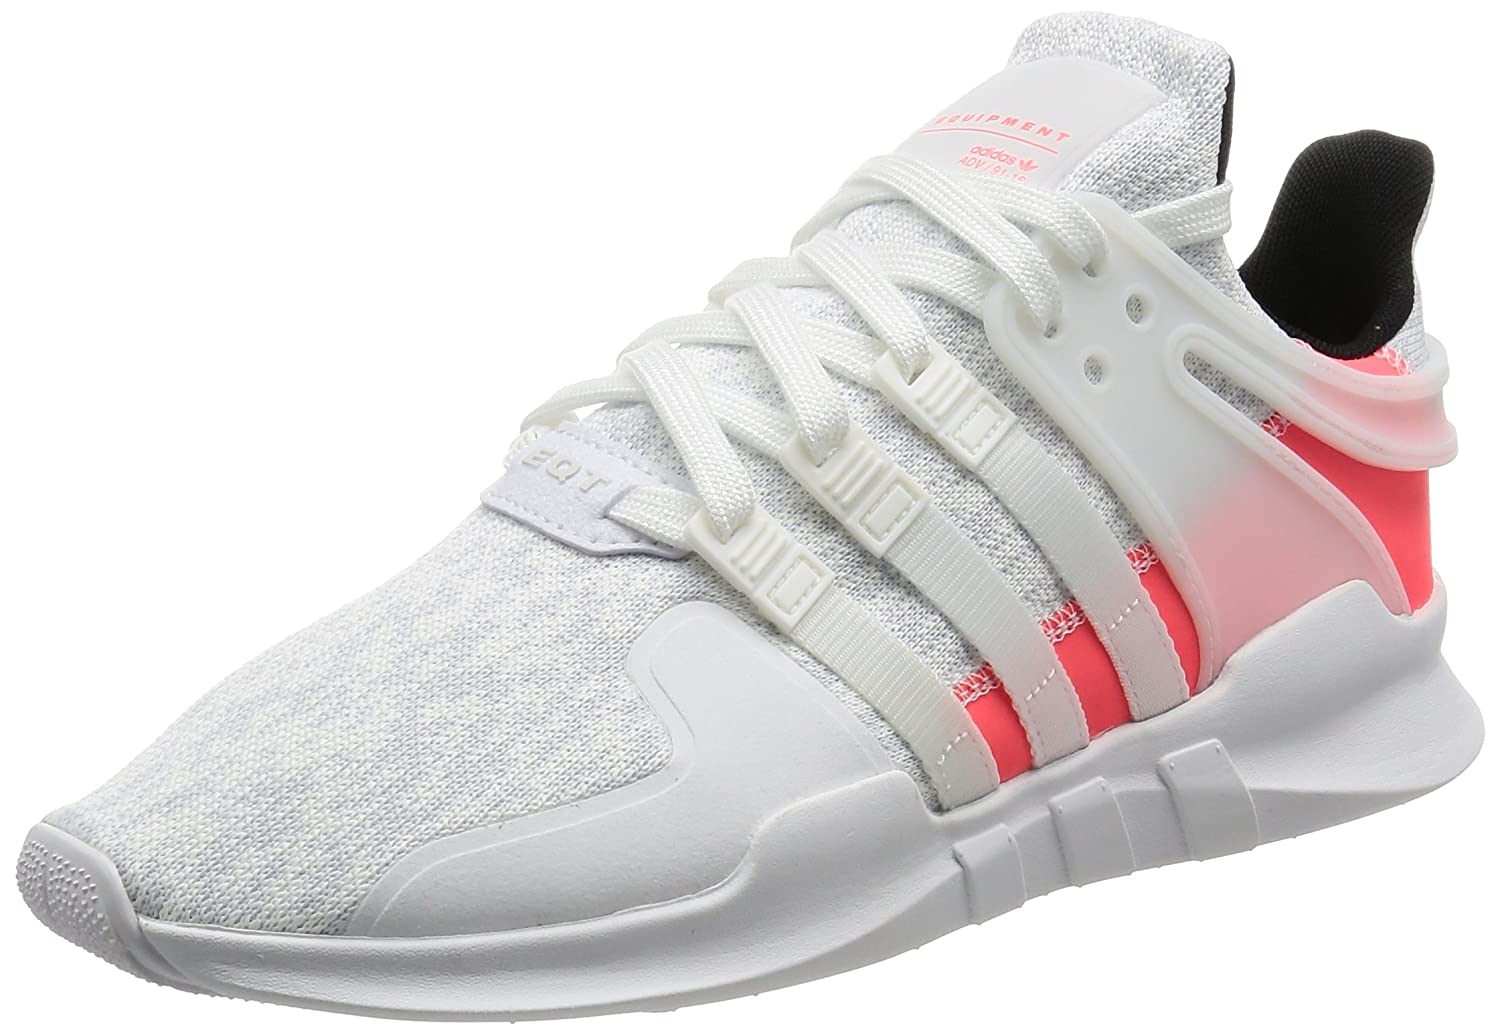 competitive price 7a20d a7ecf Adidas Originals Equipment Support ADV Herren Sneaker adidas Originals  Amazon.de Schuhe  Handtaschen